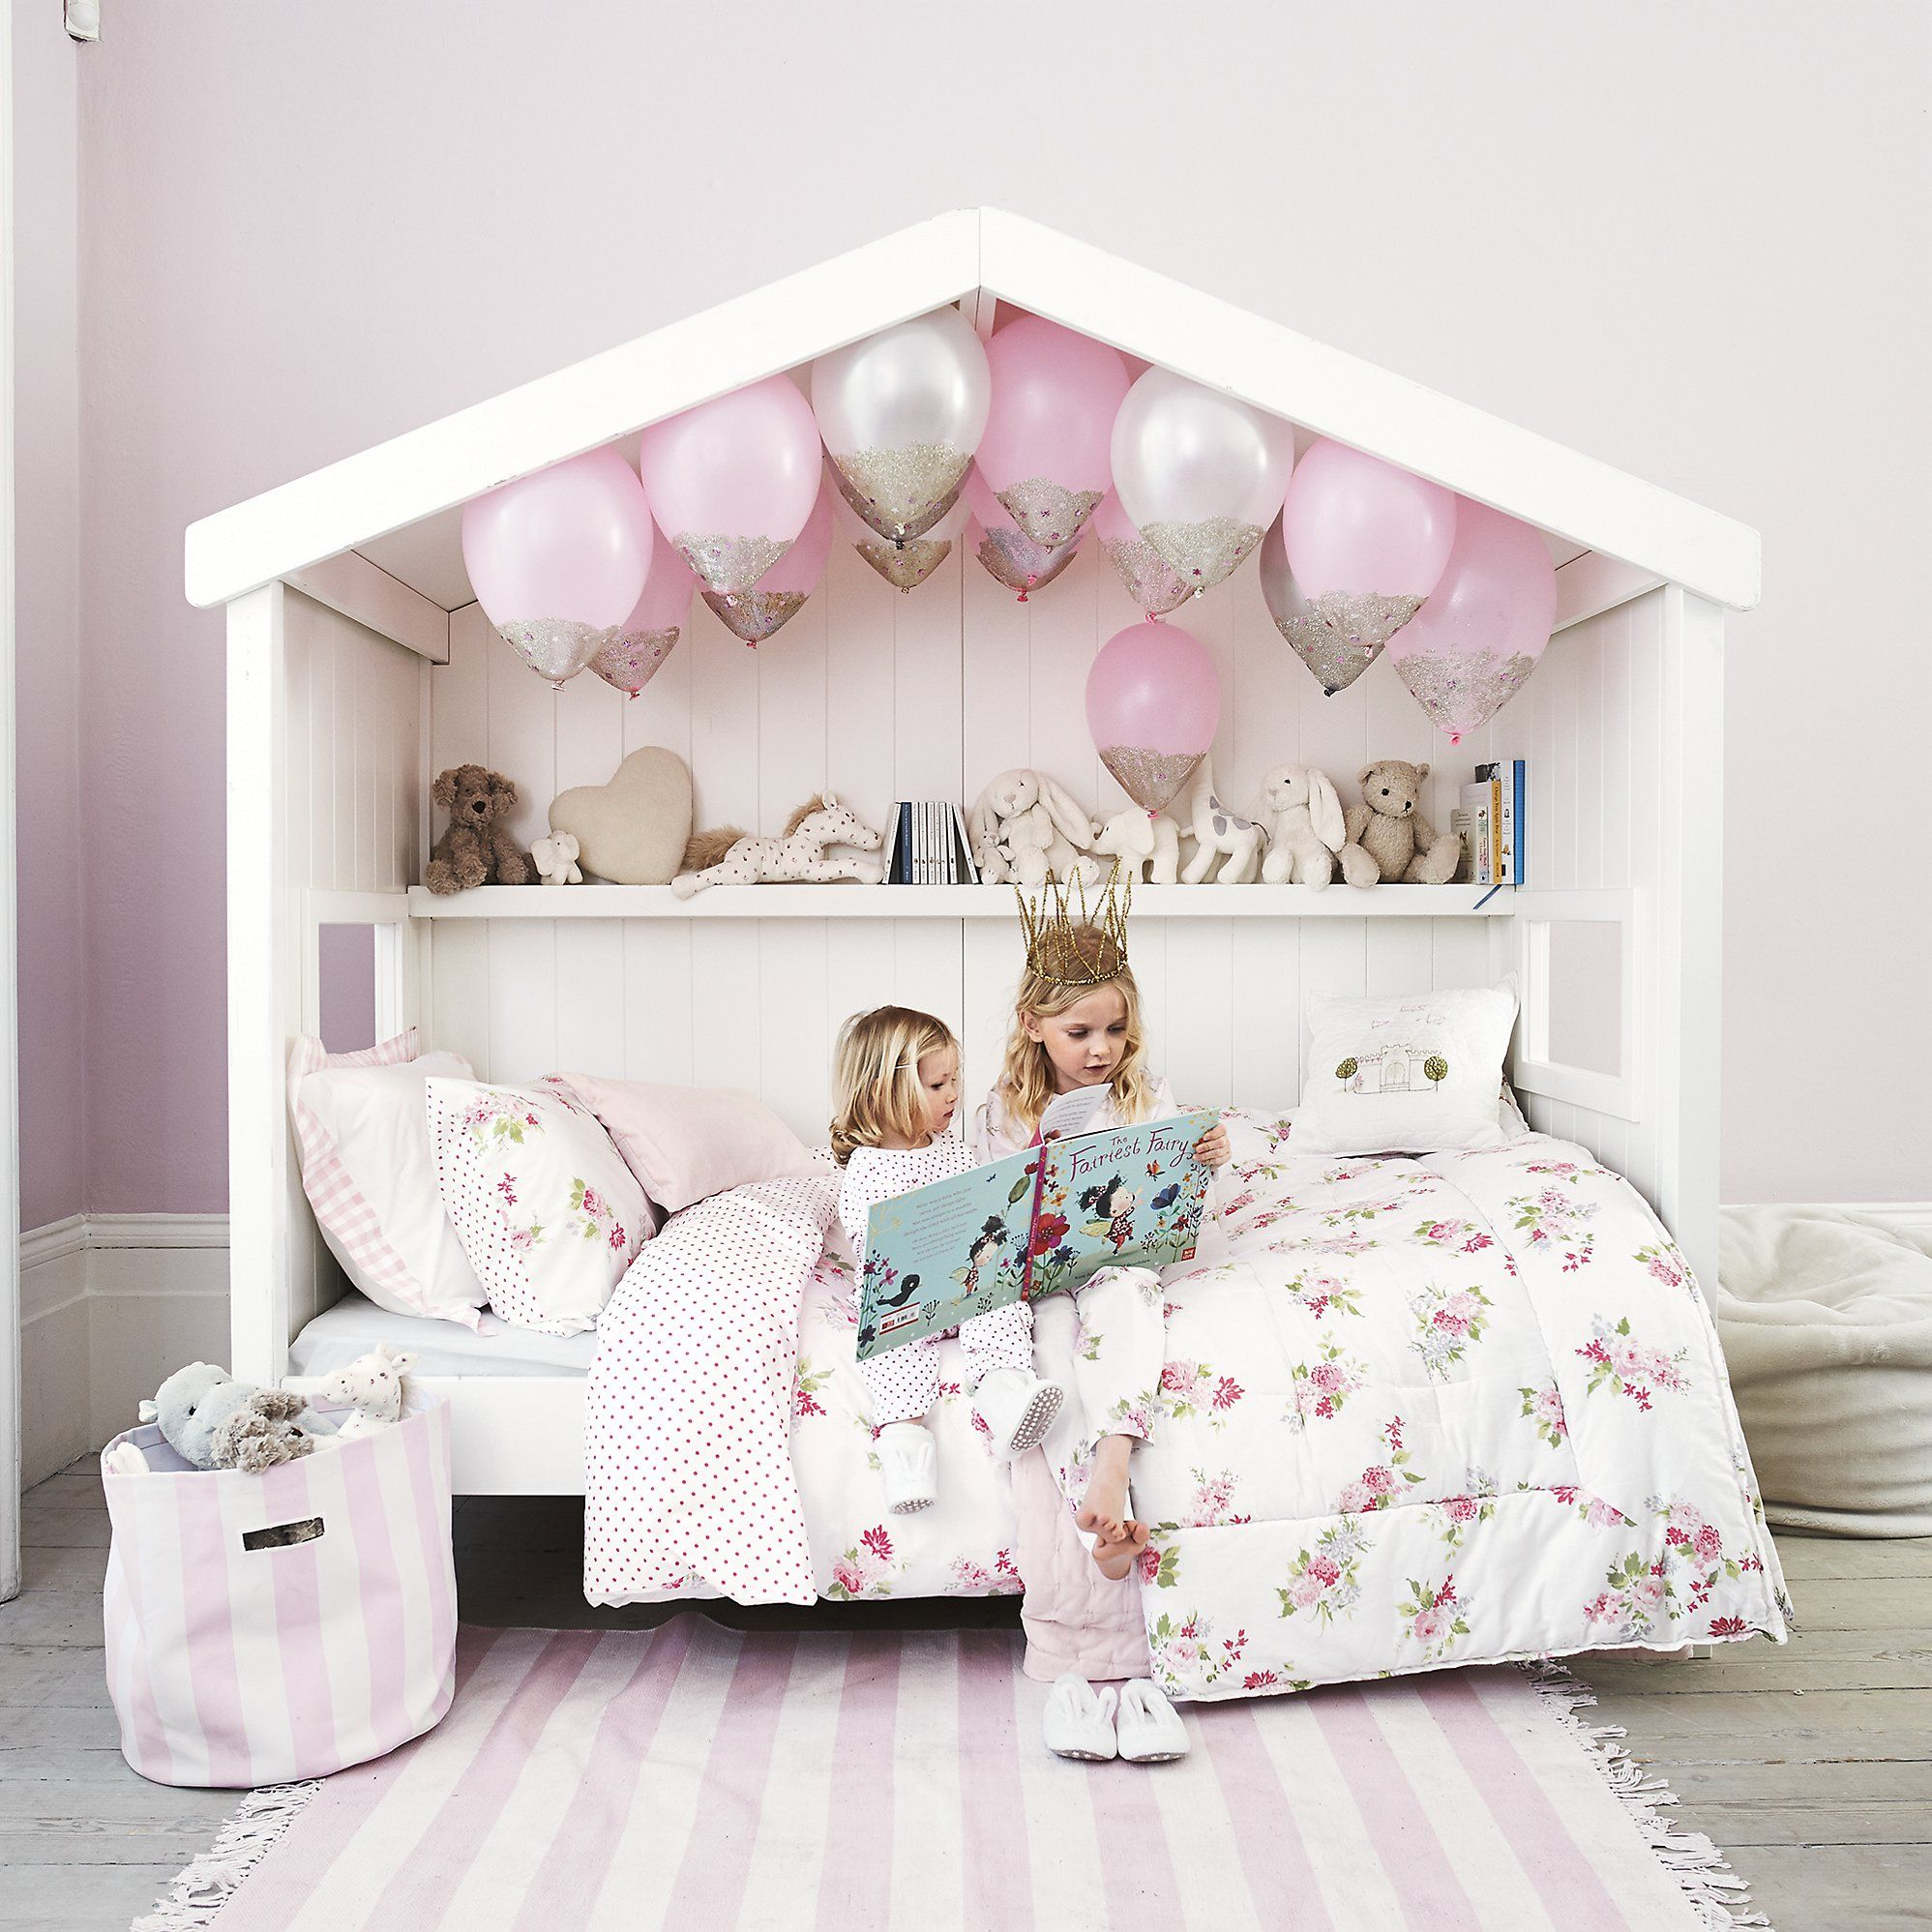 Isabella Bed Linen The White Company This Is It This Is The Cutest Bed Ever Just Need It Unless We Find One Childrens Bedrooms Girl Room Toddler Bedrooms